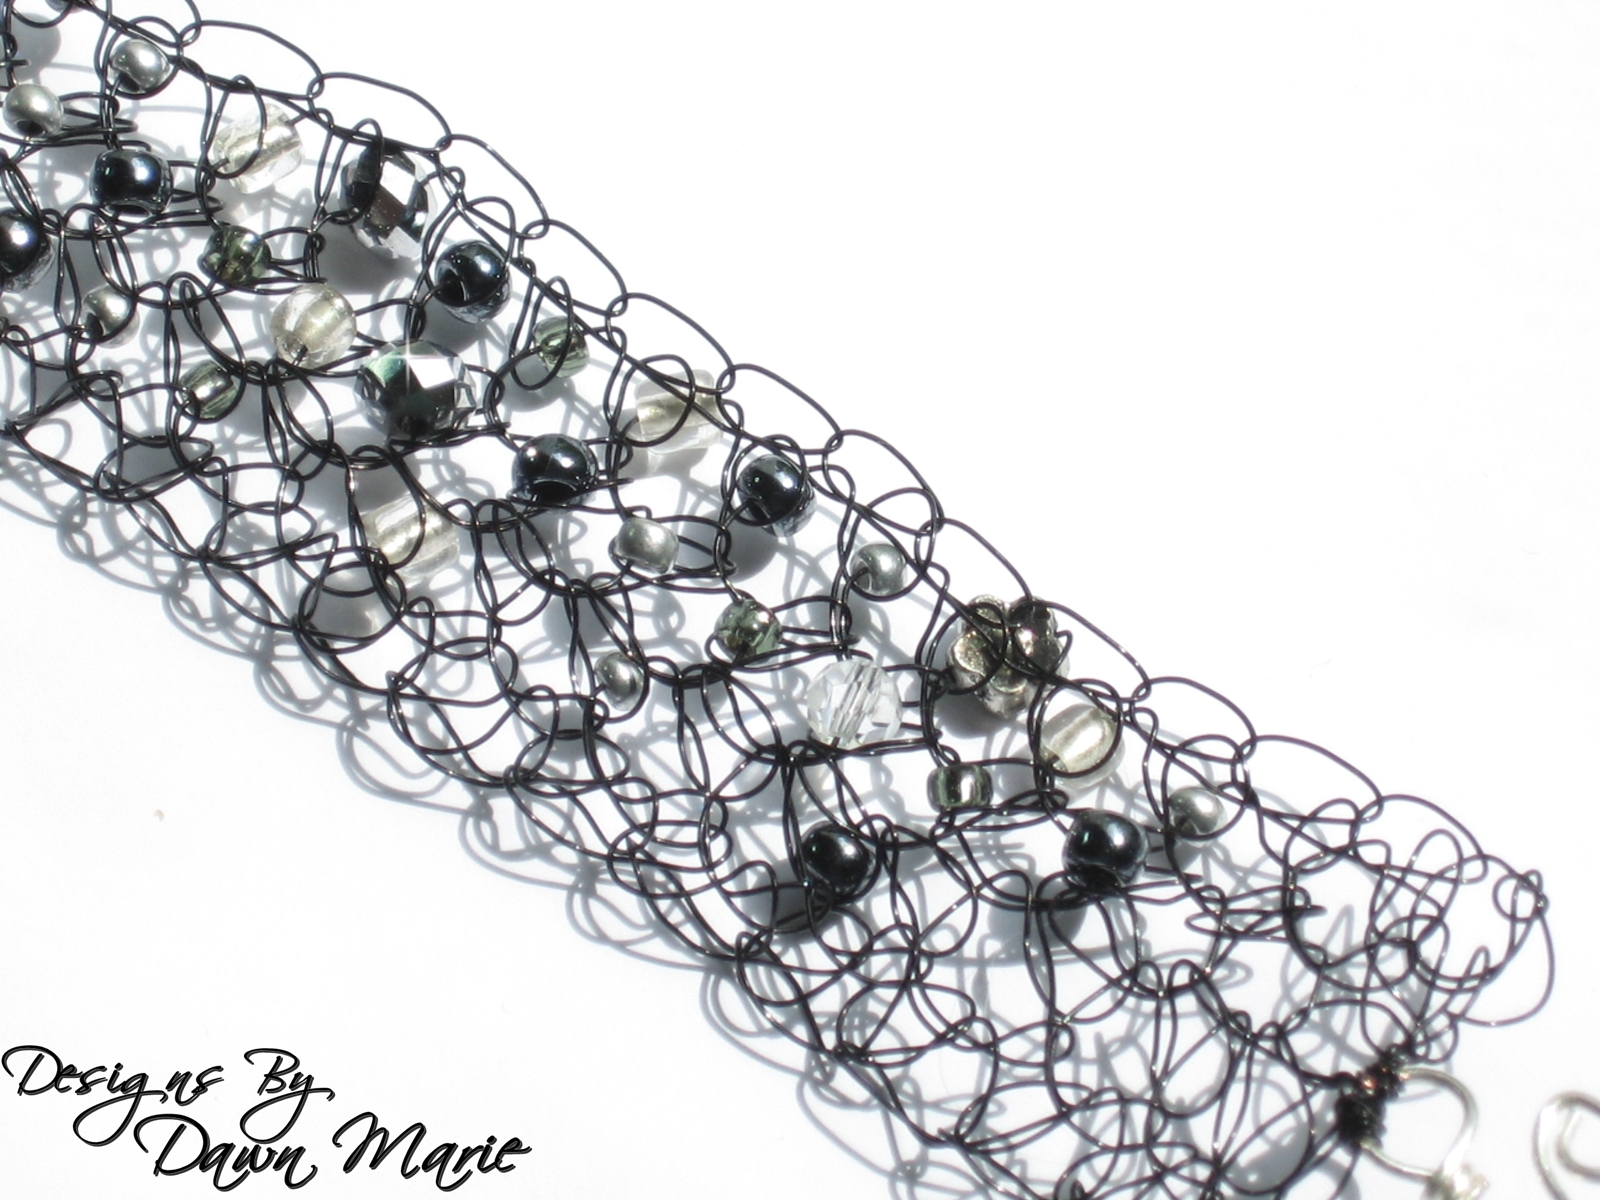 Bella Amore Legacy Jewelry: Softflex Craft Wire: An Honest Review